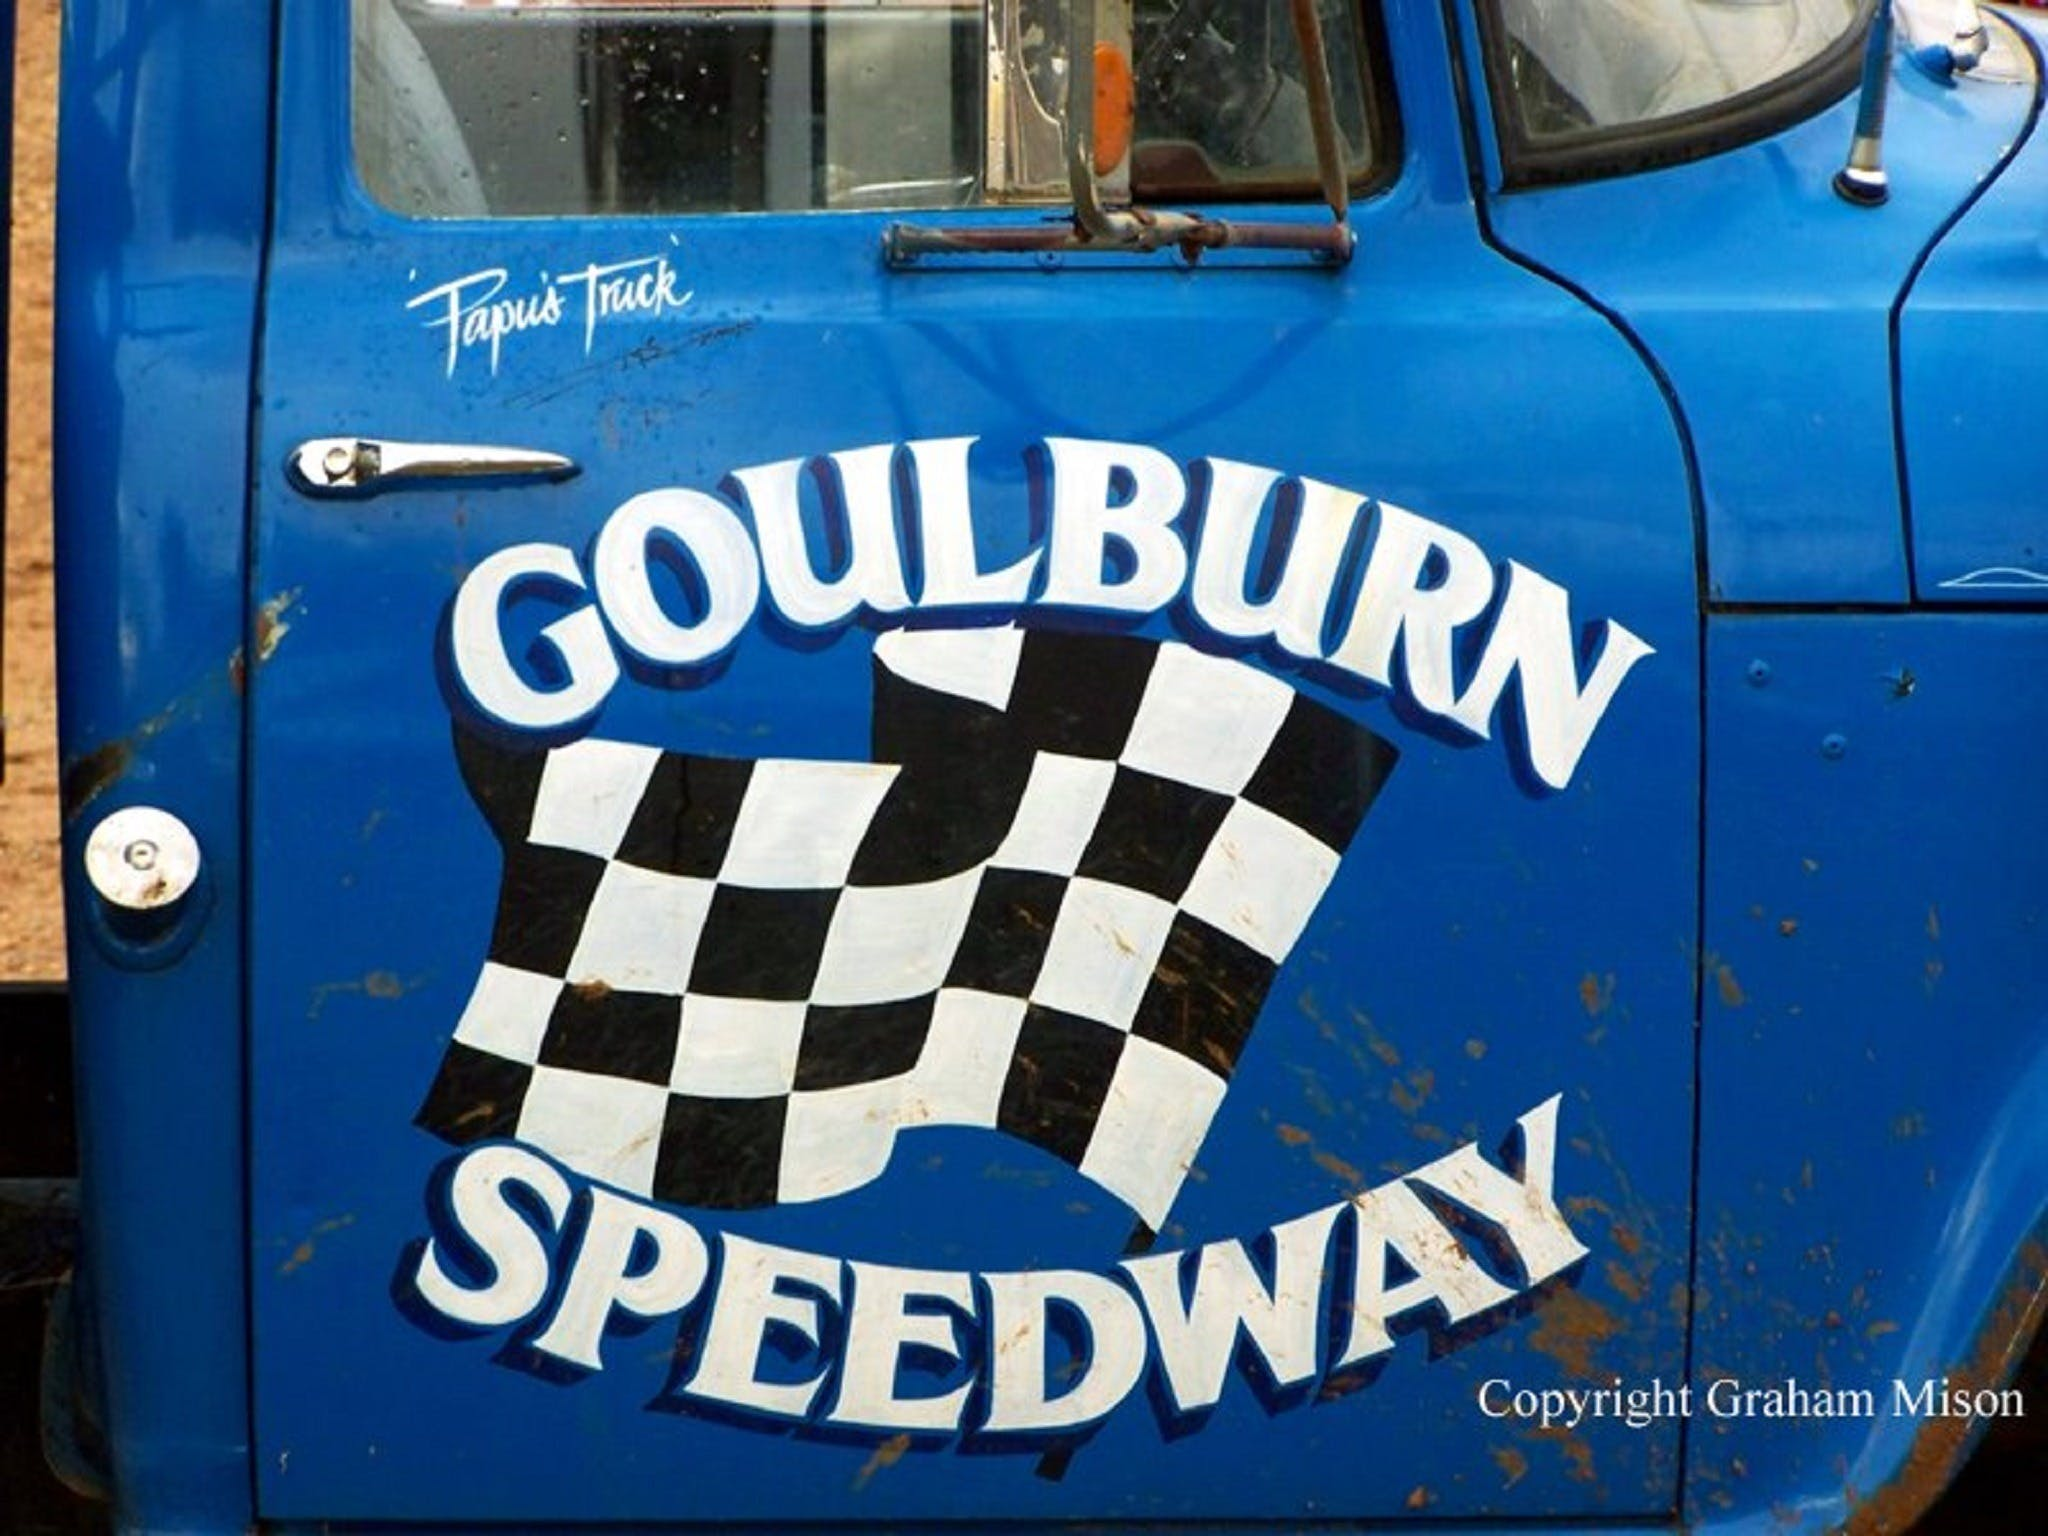 50 years of racing at Goulburn Speedway - Accommodation Melbourne